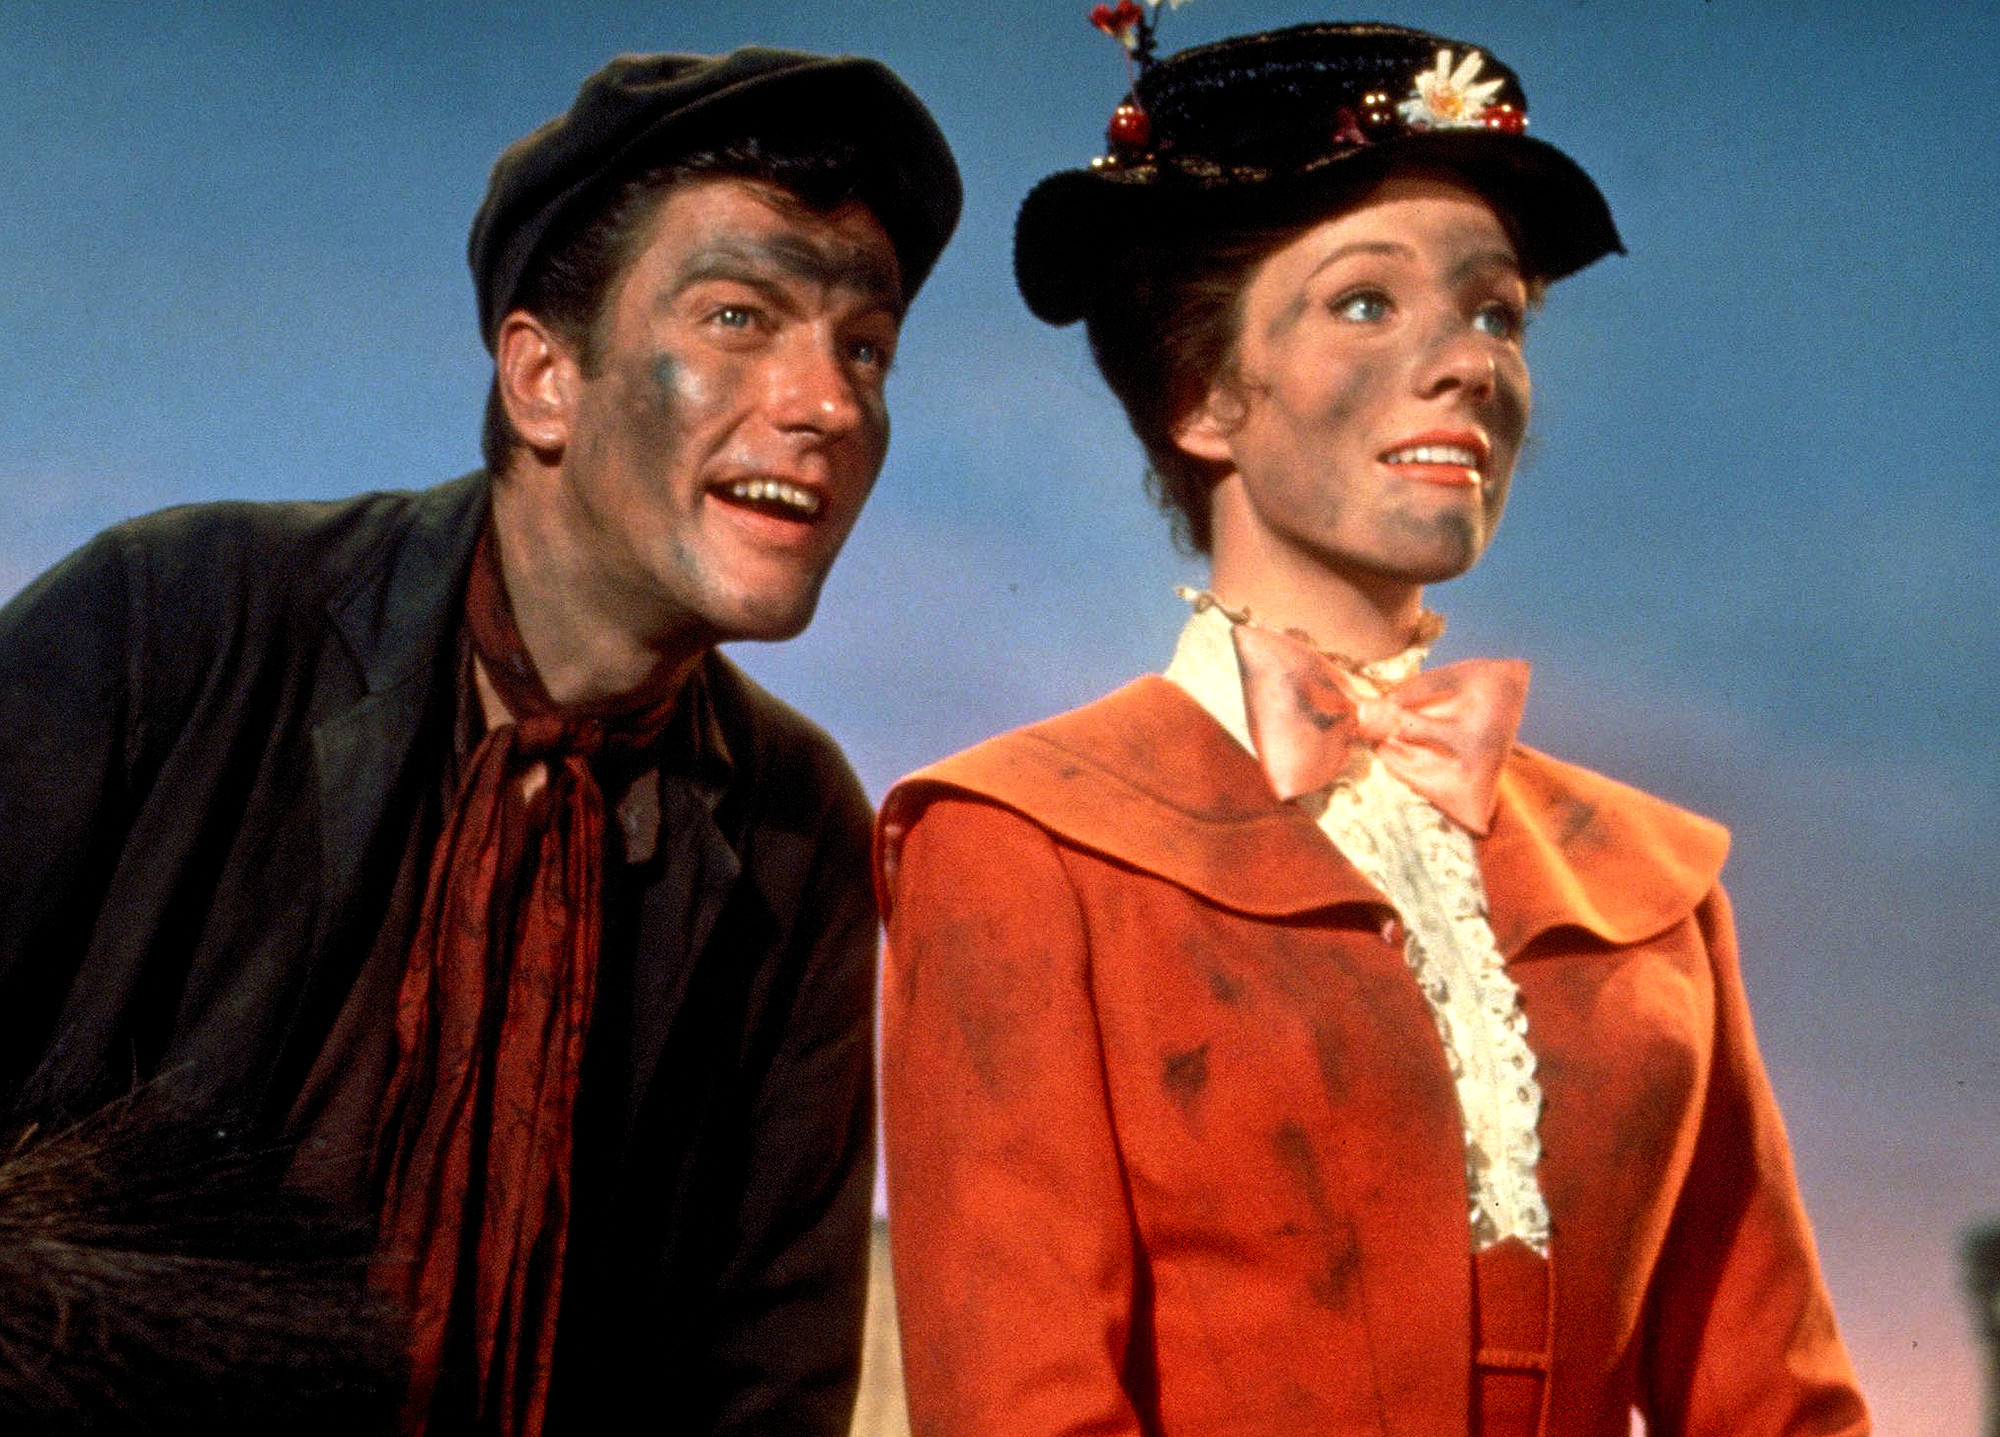 Mary Poppins Scene Dirt on Faces Clothes